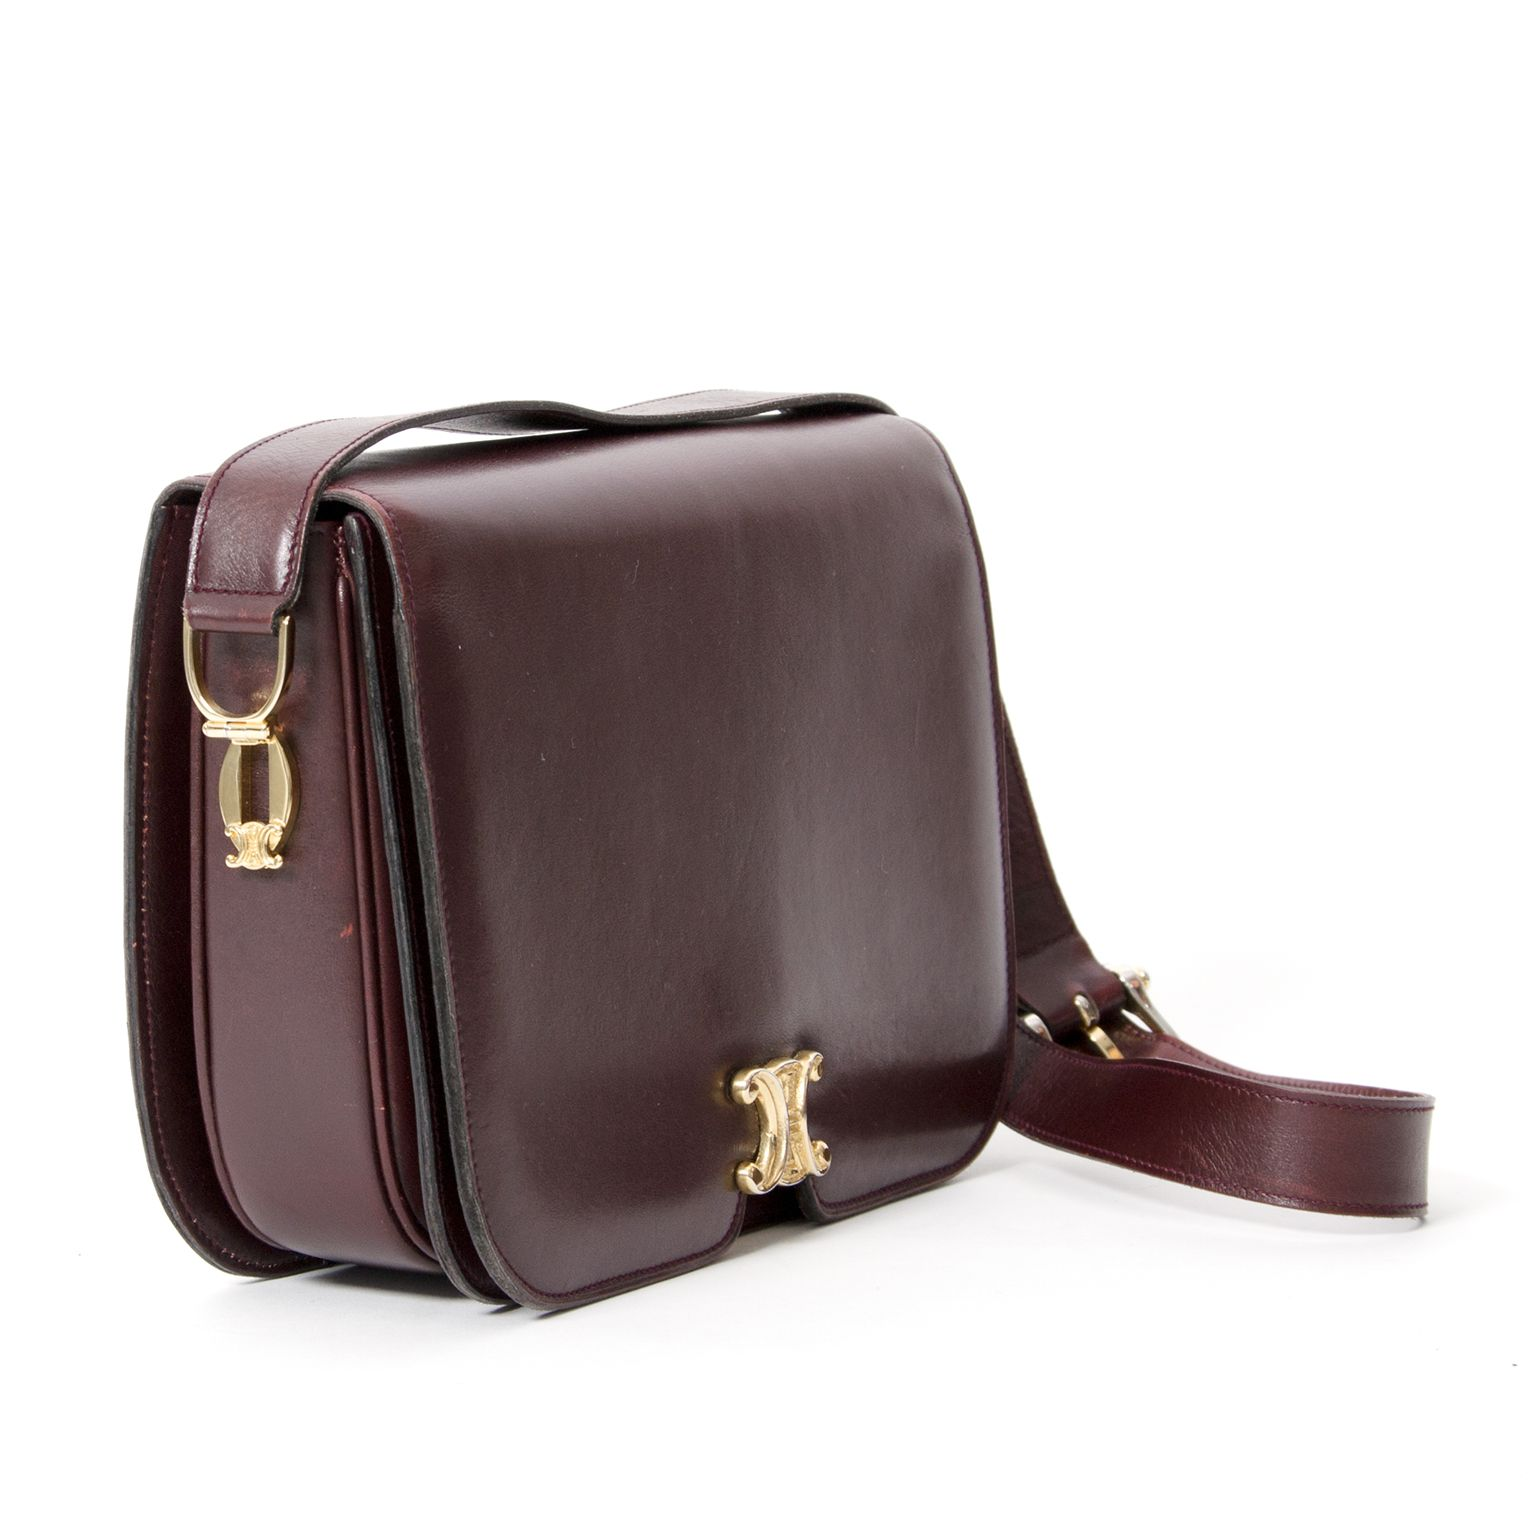 8ed2c17a9 ... Buy and Sell Authentic Luxury. Céline Aubergine Shoulder Bag.  Secondhand designer bags LabelLOV